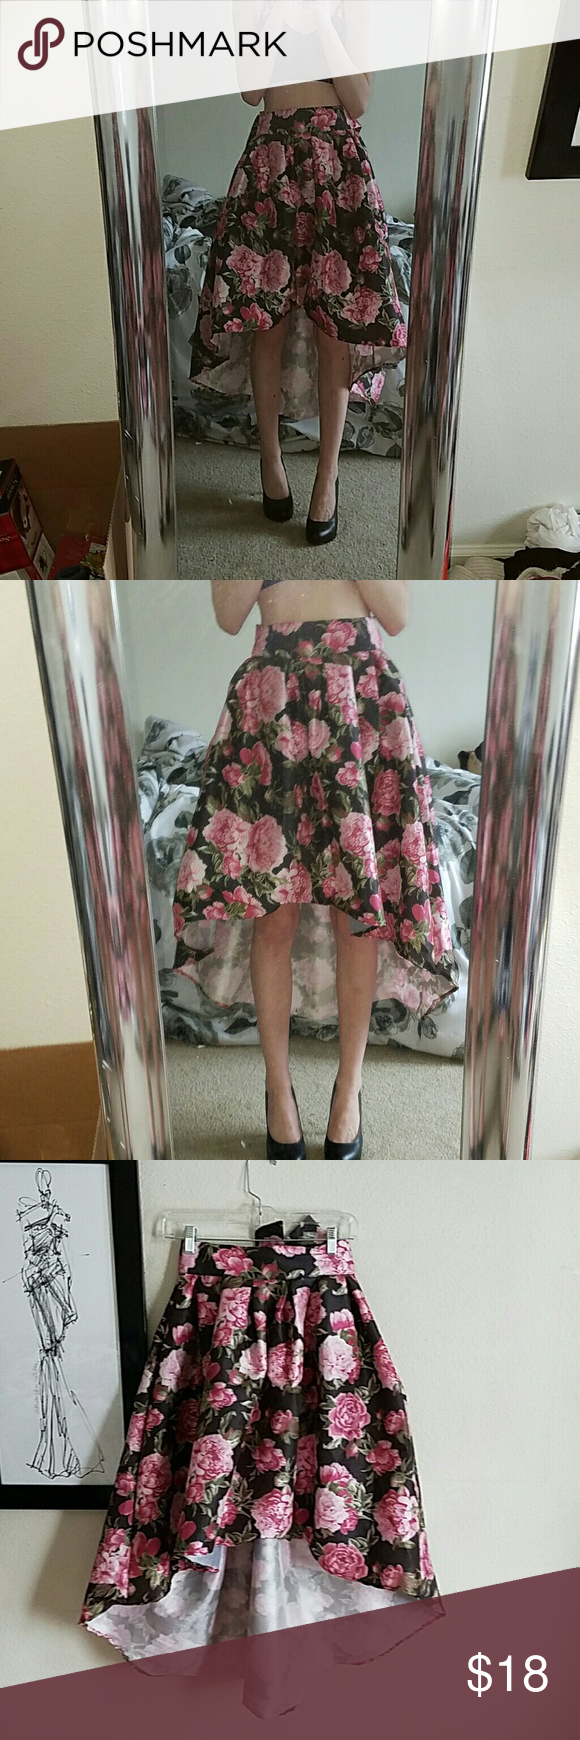 Extravagant floral skirt This skirt is beautiful! High low, pink and green rose print. Rue 21 Skirts High Low